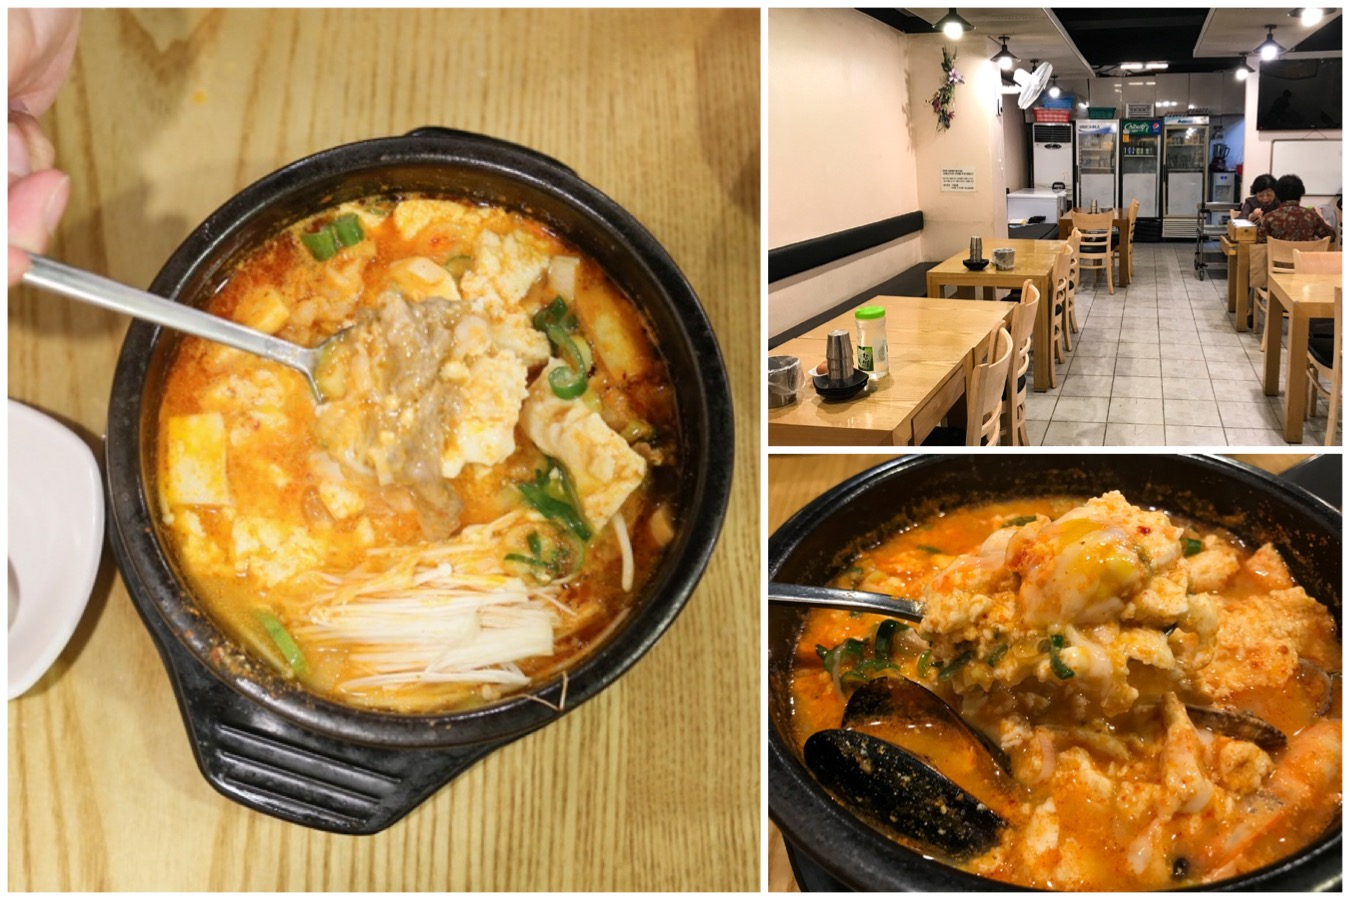 Myeongdong Sundubu - Comforting And Spicy Soft Tofu Stew, At Myeongdong Seoul